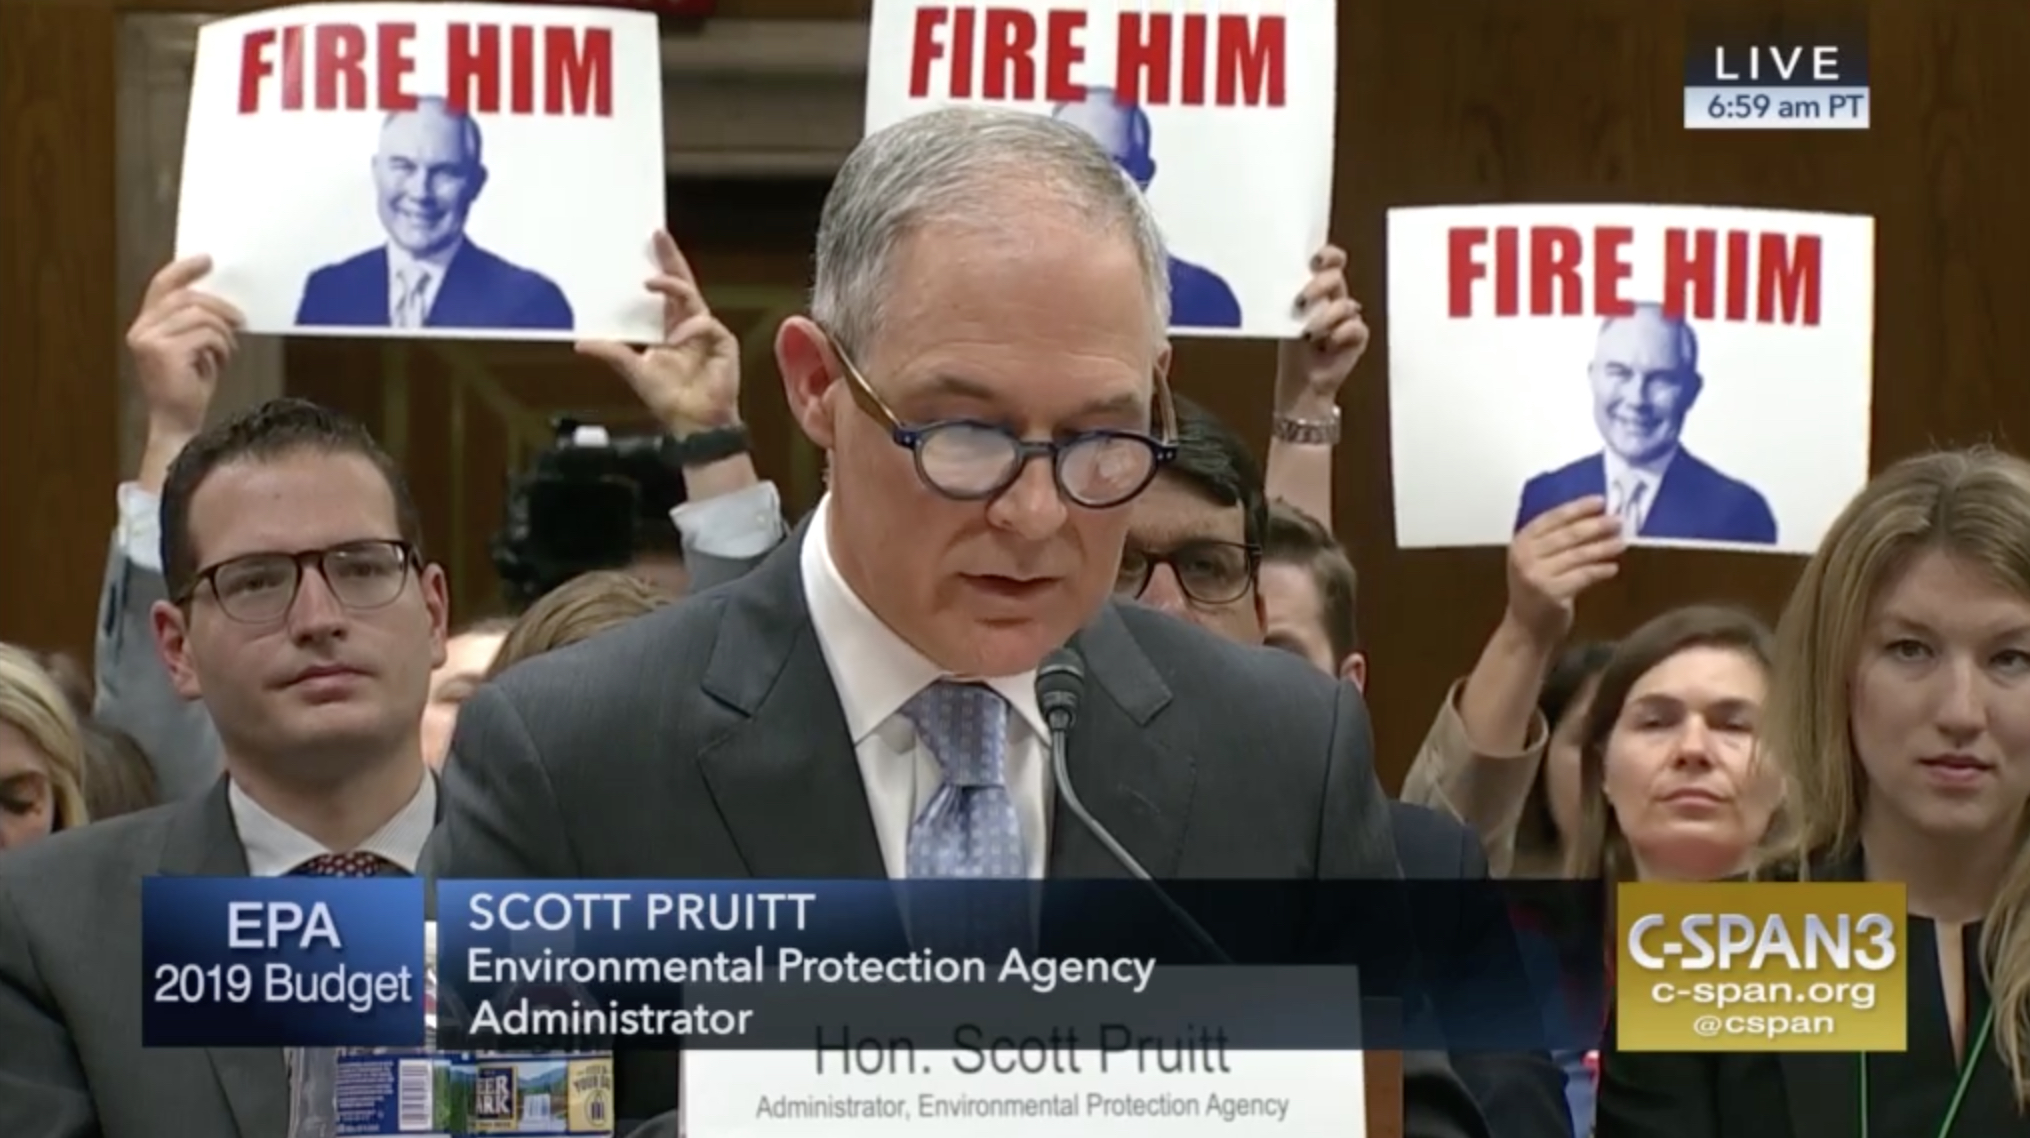 Environmental Protection Agency Administrator Scott Pruitt endured criticism from senators and protesters at a hearing Wednesday. (Video still courtesy C-SPAN)